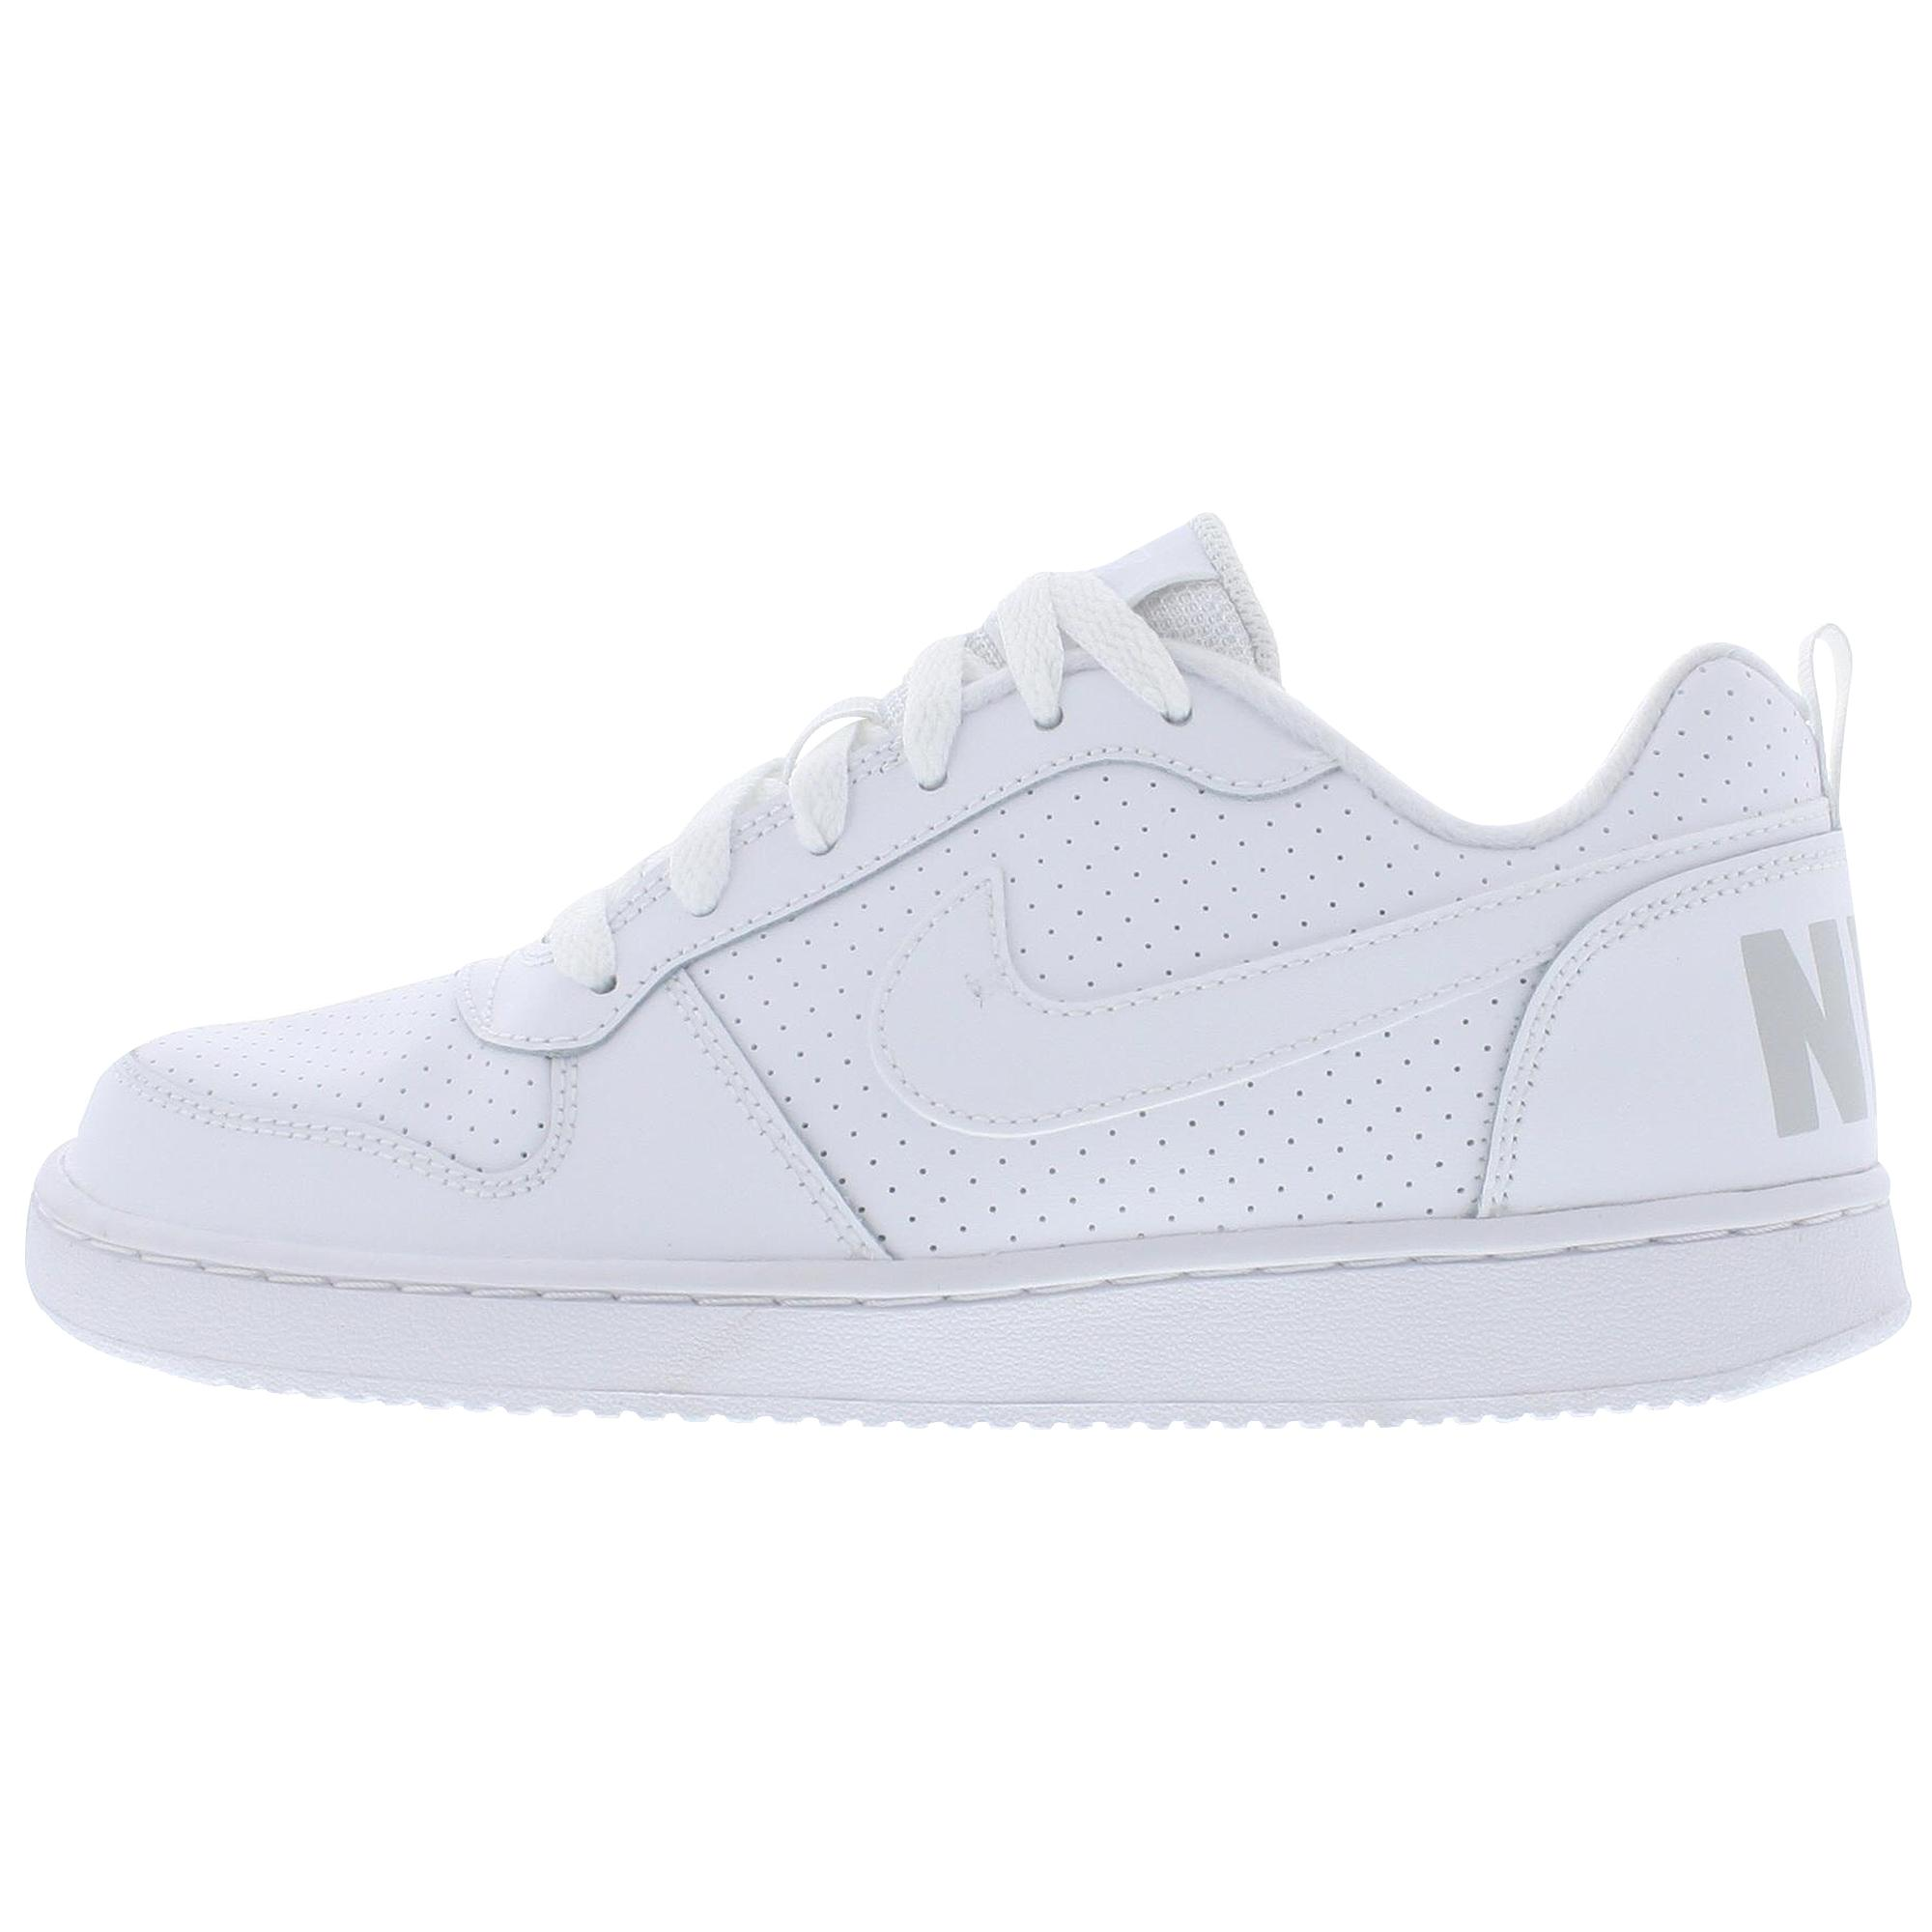 classic fit cfe41 430d8 Nike Court Borough Low (GS) Spor Ayakkabı